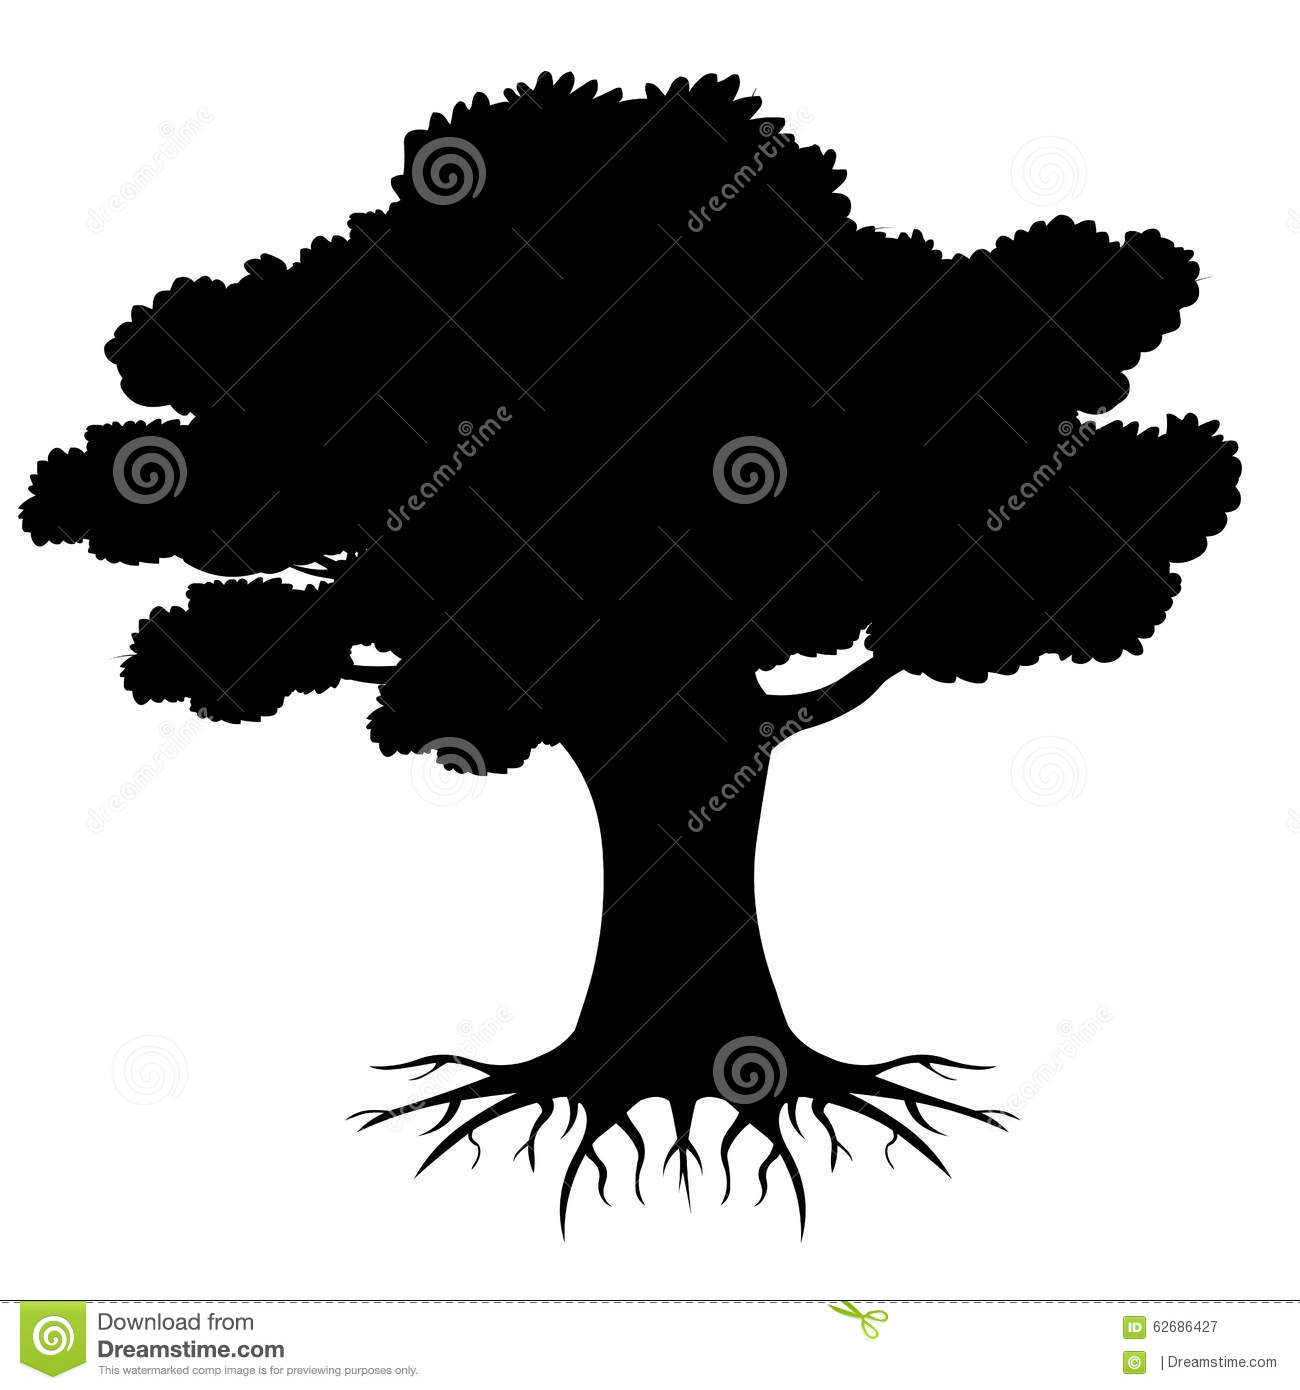 Big Tree Roots Silhouette With Roots Stock Vector - Image: 62686427